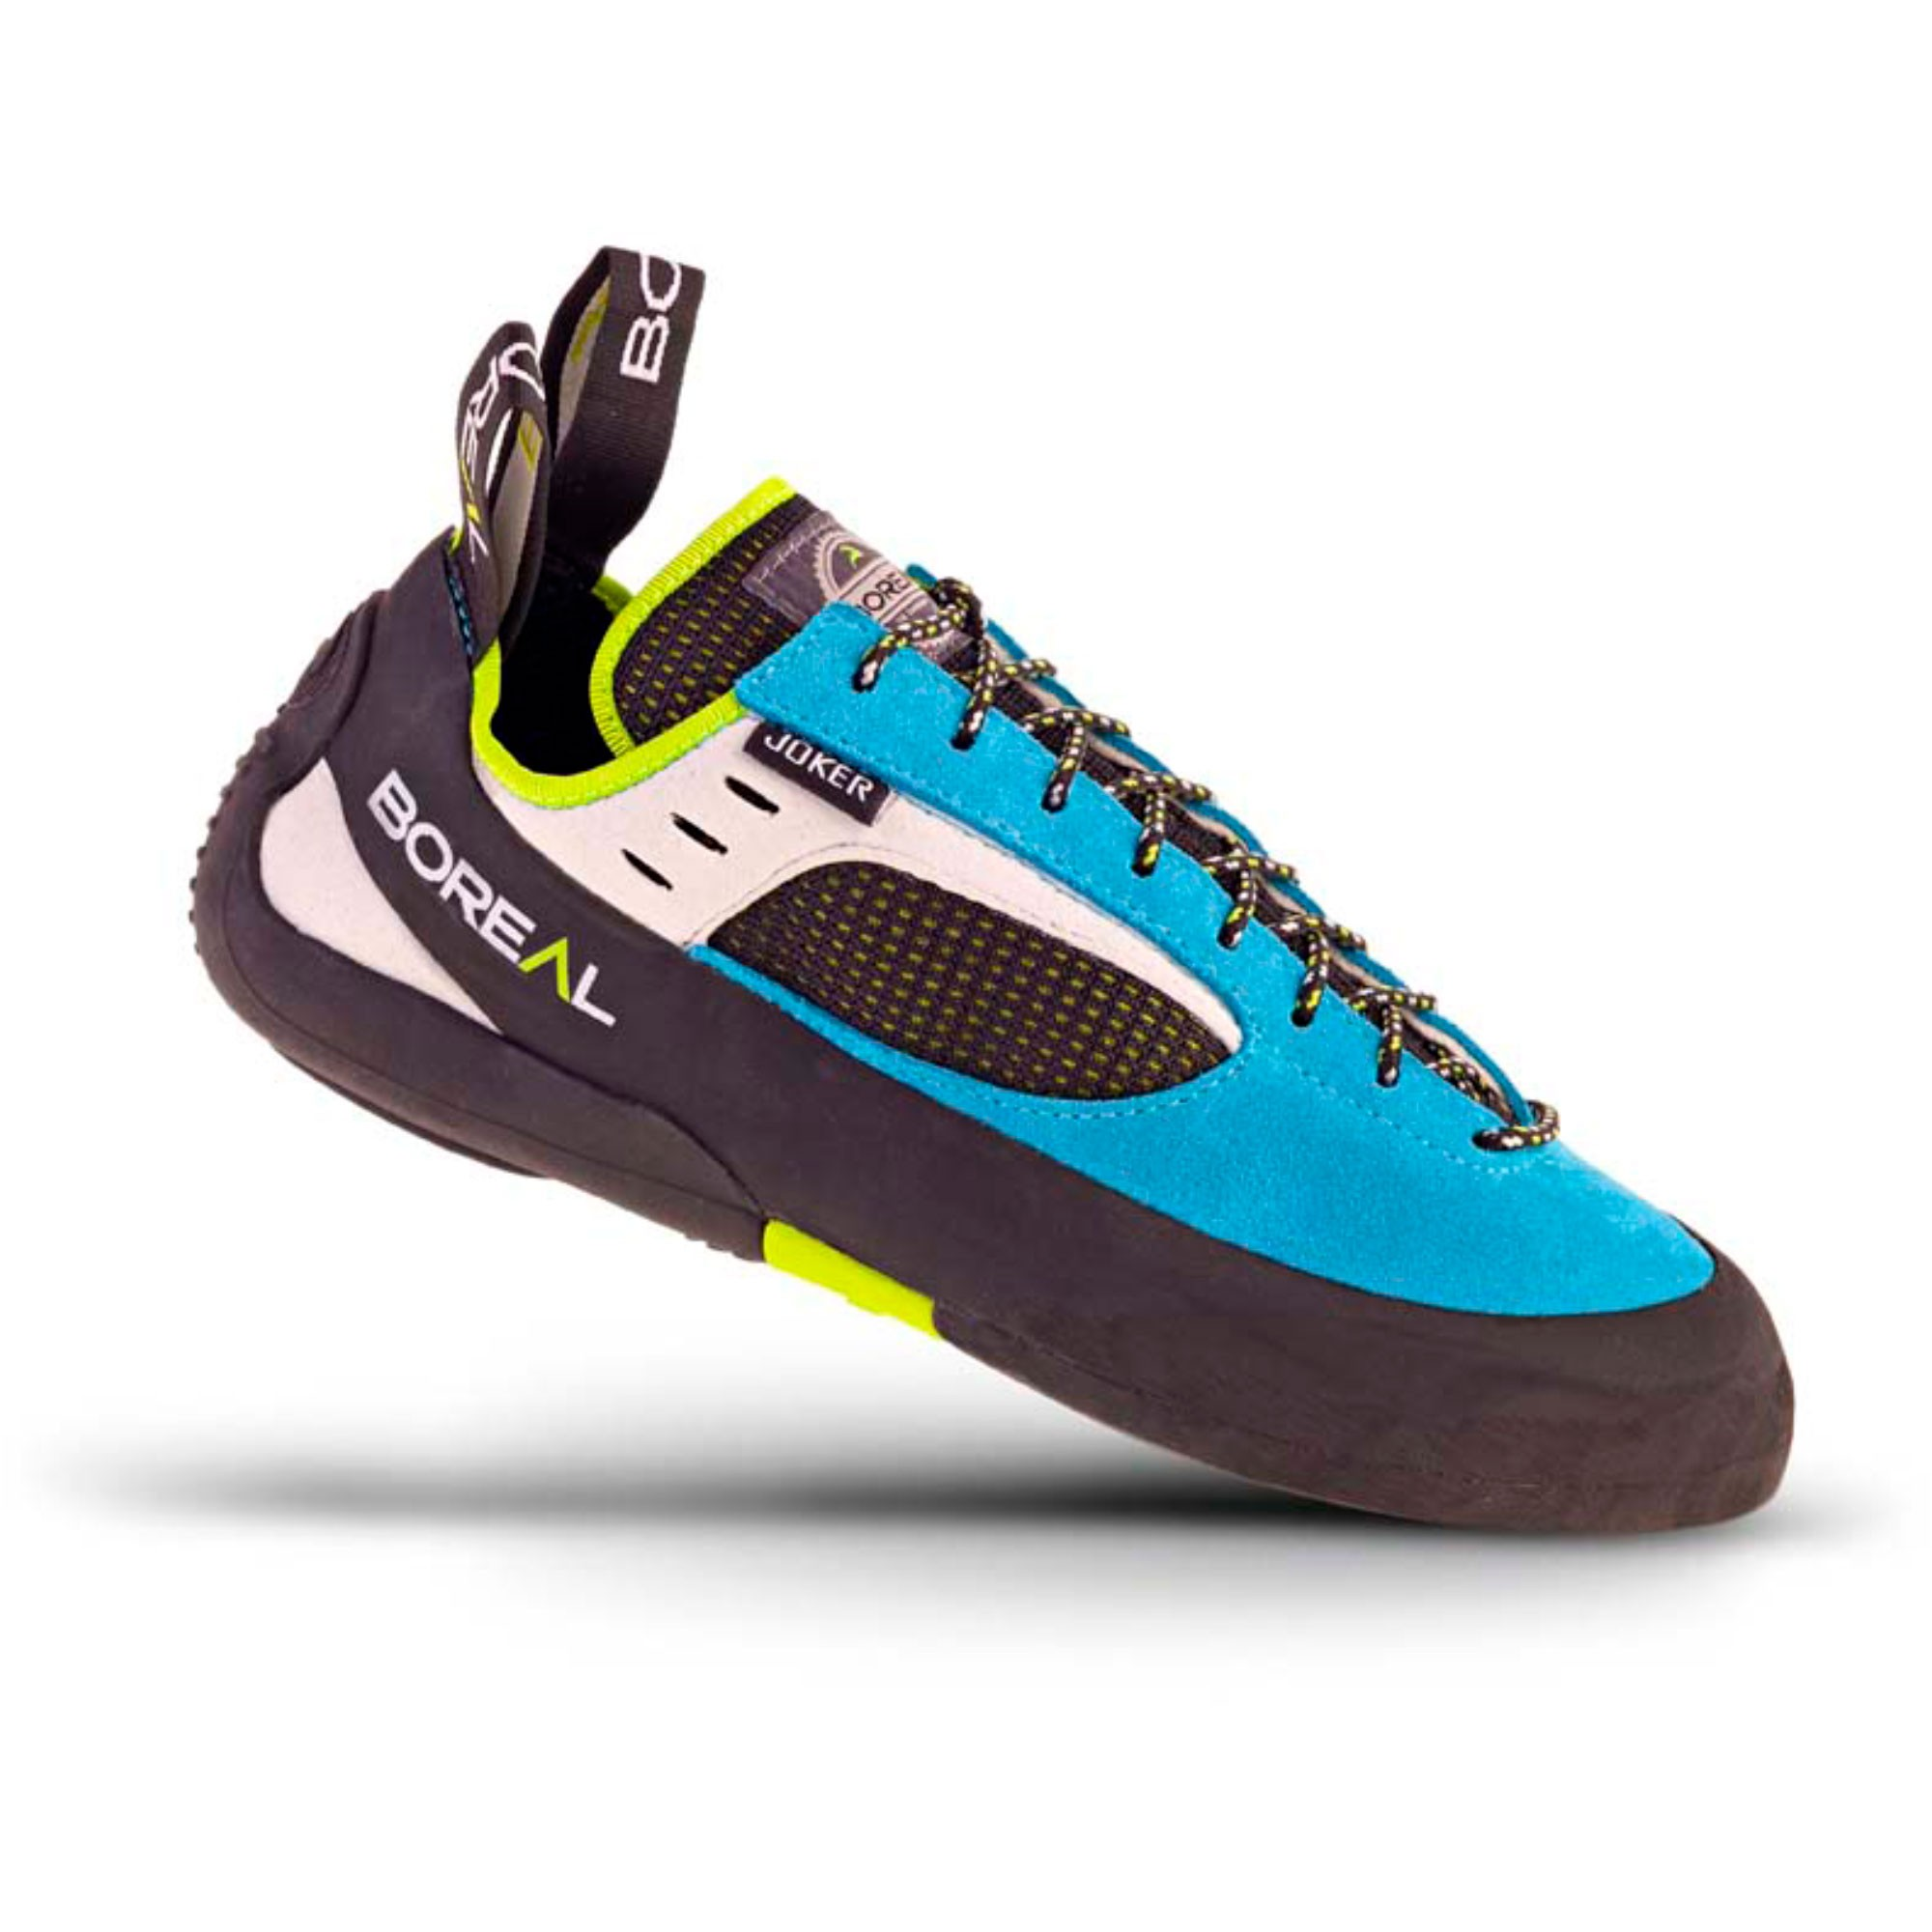 BOREAL - Women's Joker Lace Climbing Shoes